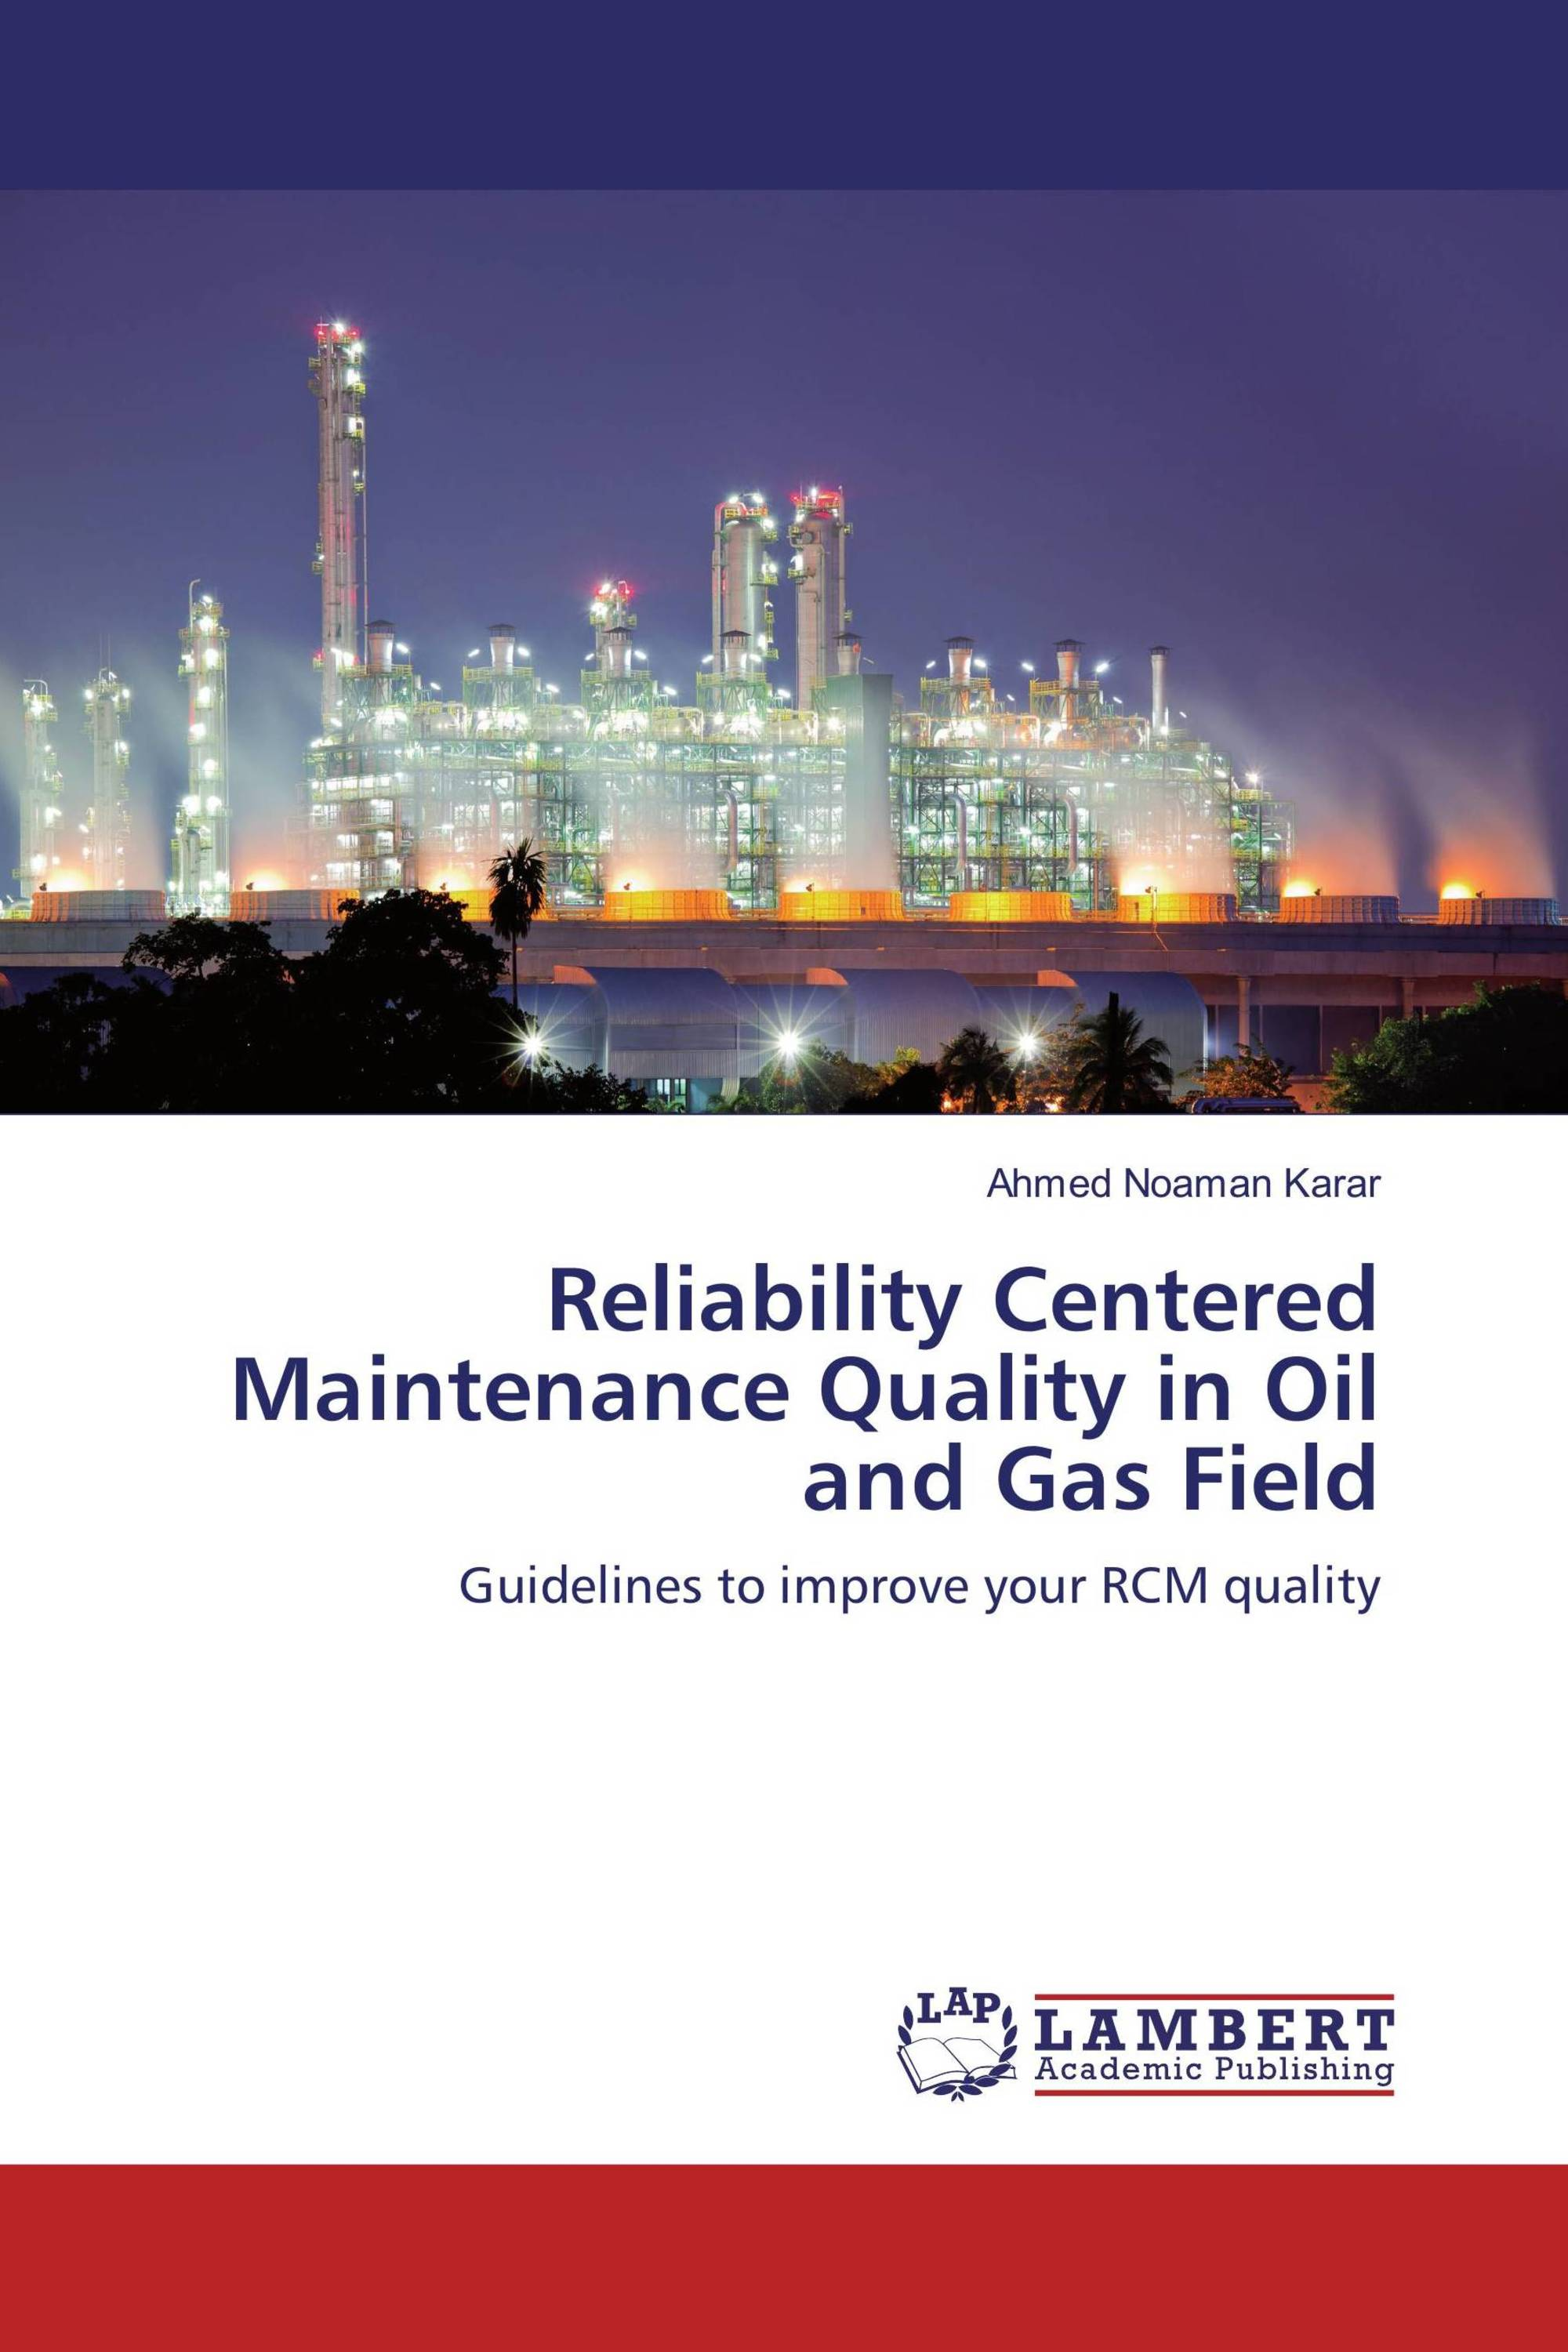 thesis on reliability centered maintenance Reliability centered maintenance (rcm) reliability centered maintenance (rcm) analysis provides a structured framework for analyzing the functions and potential.